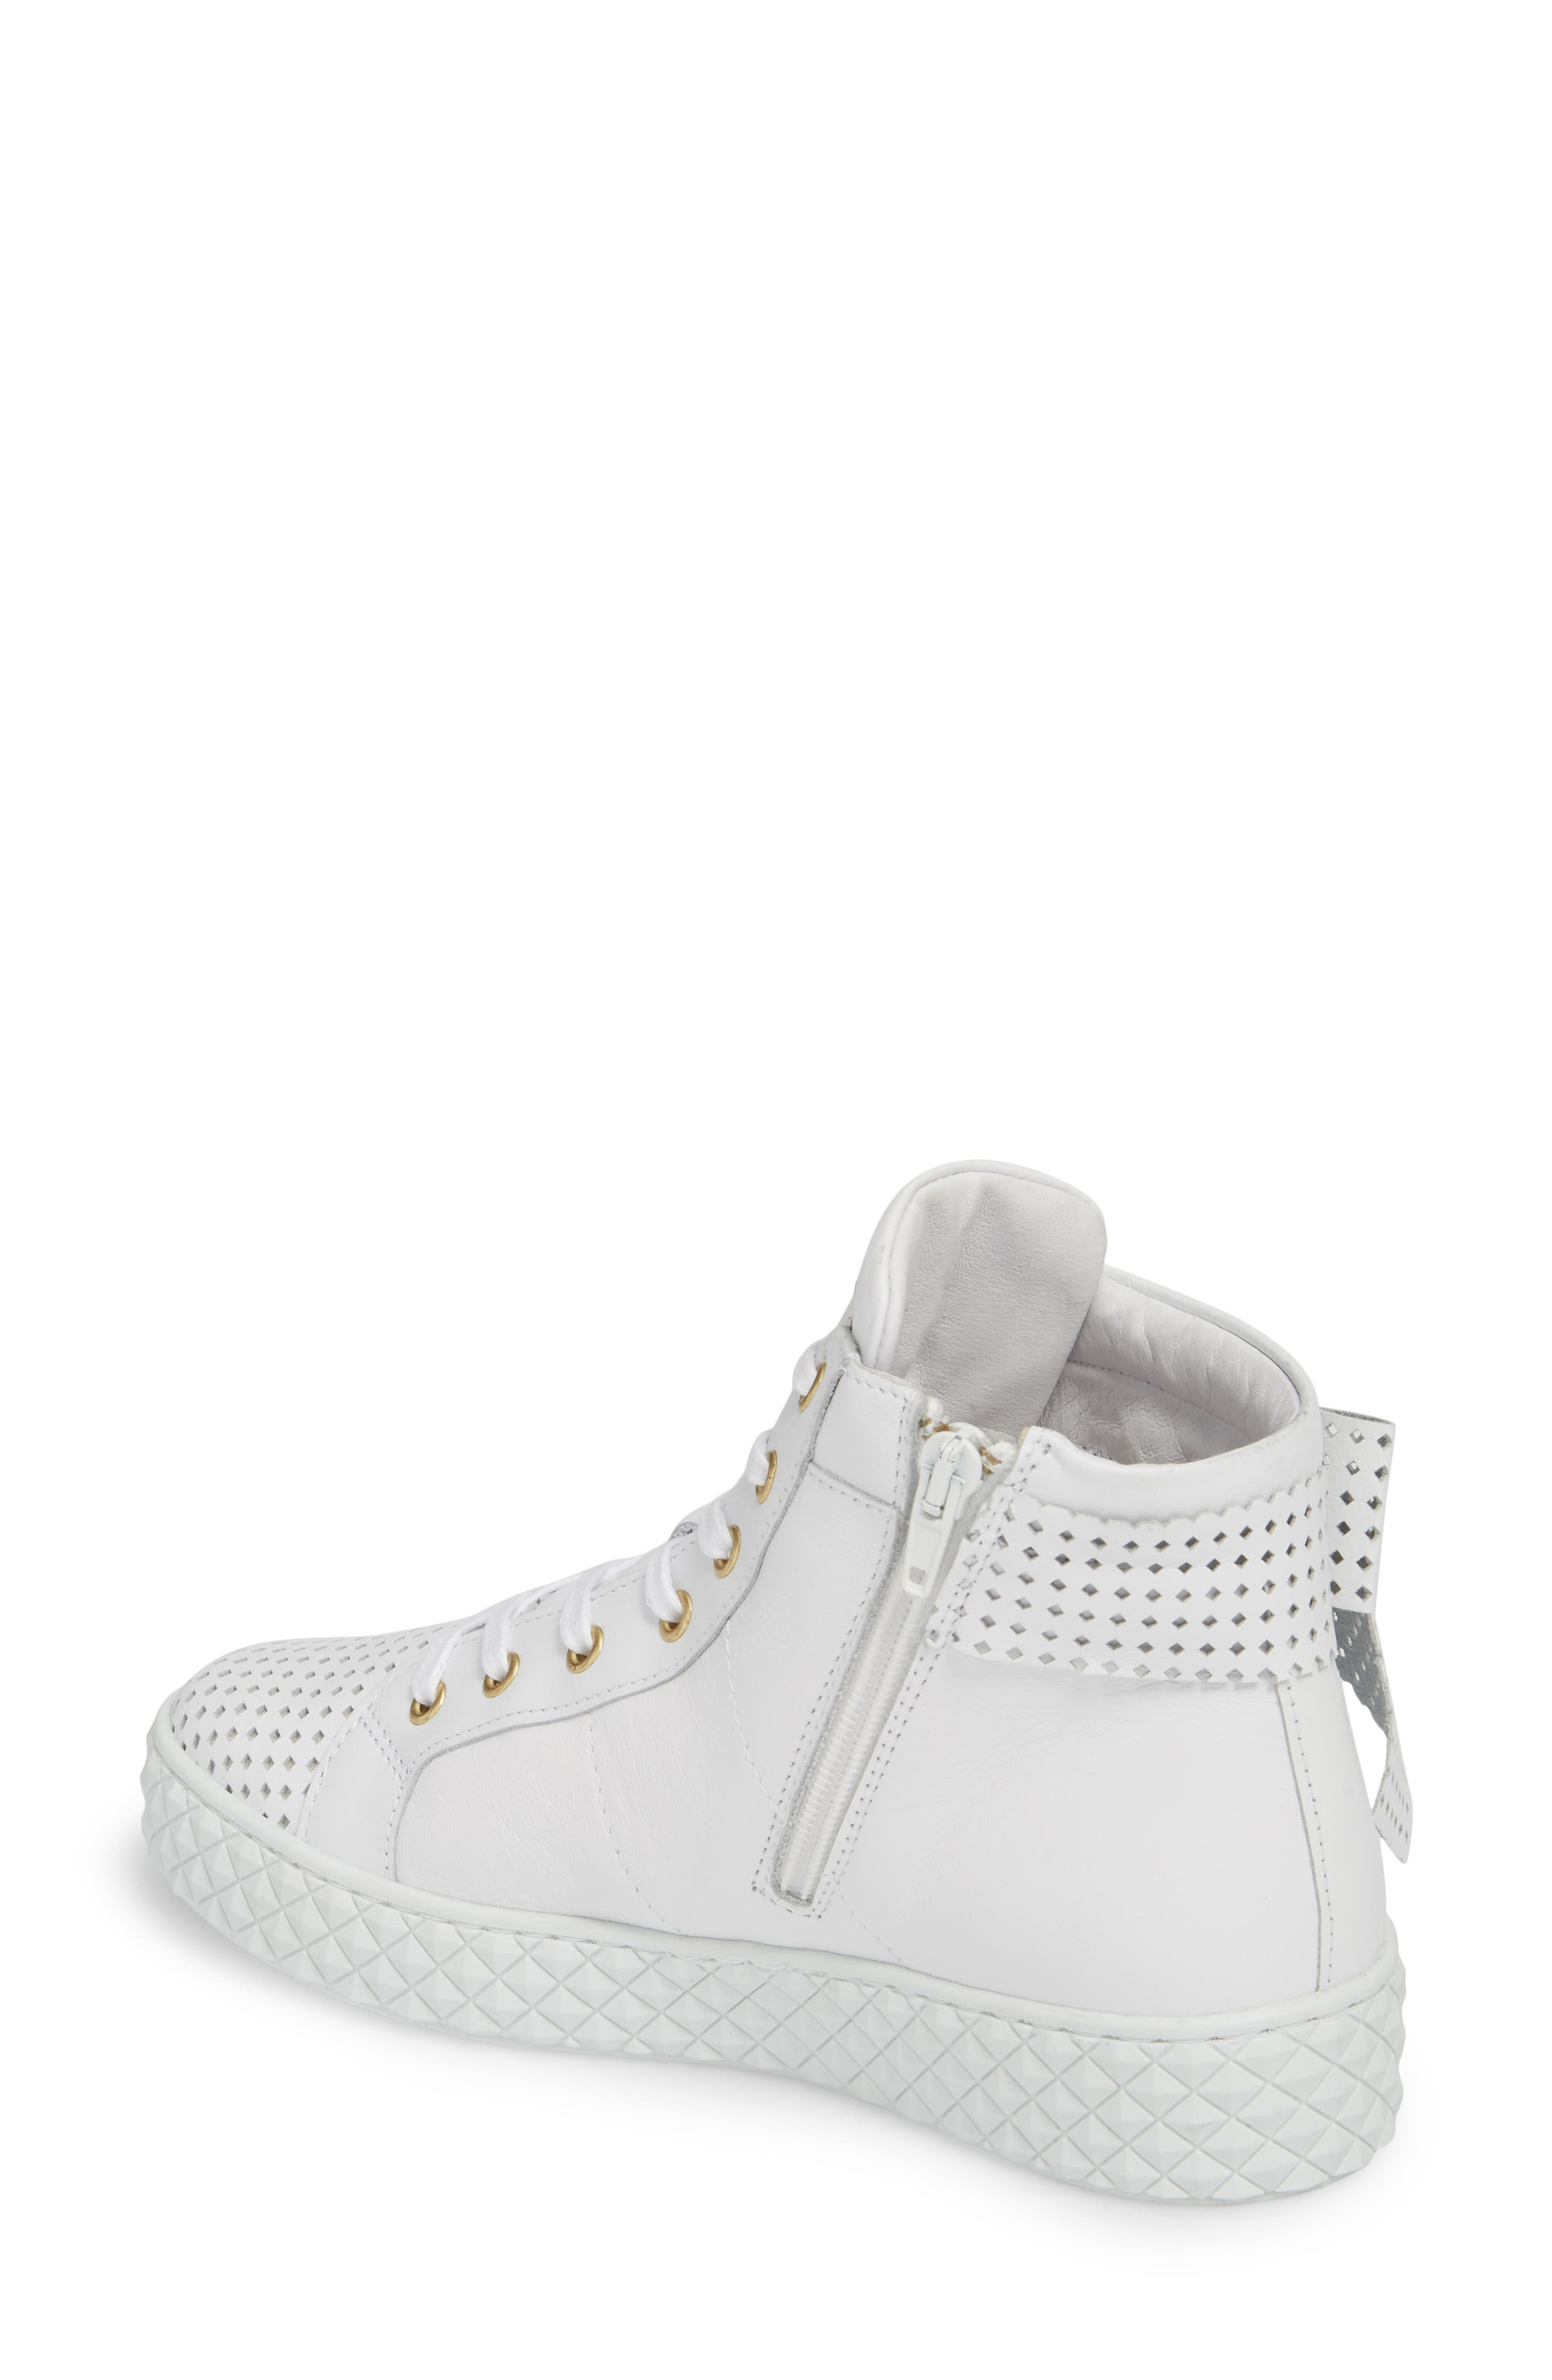 Avery High Top Sneaker,                             Alternate thumbnail 2, color,                             WHITE LEATHER